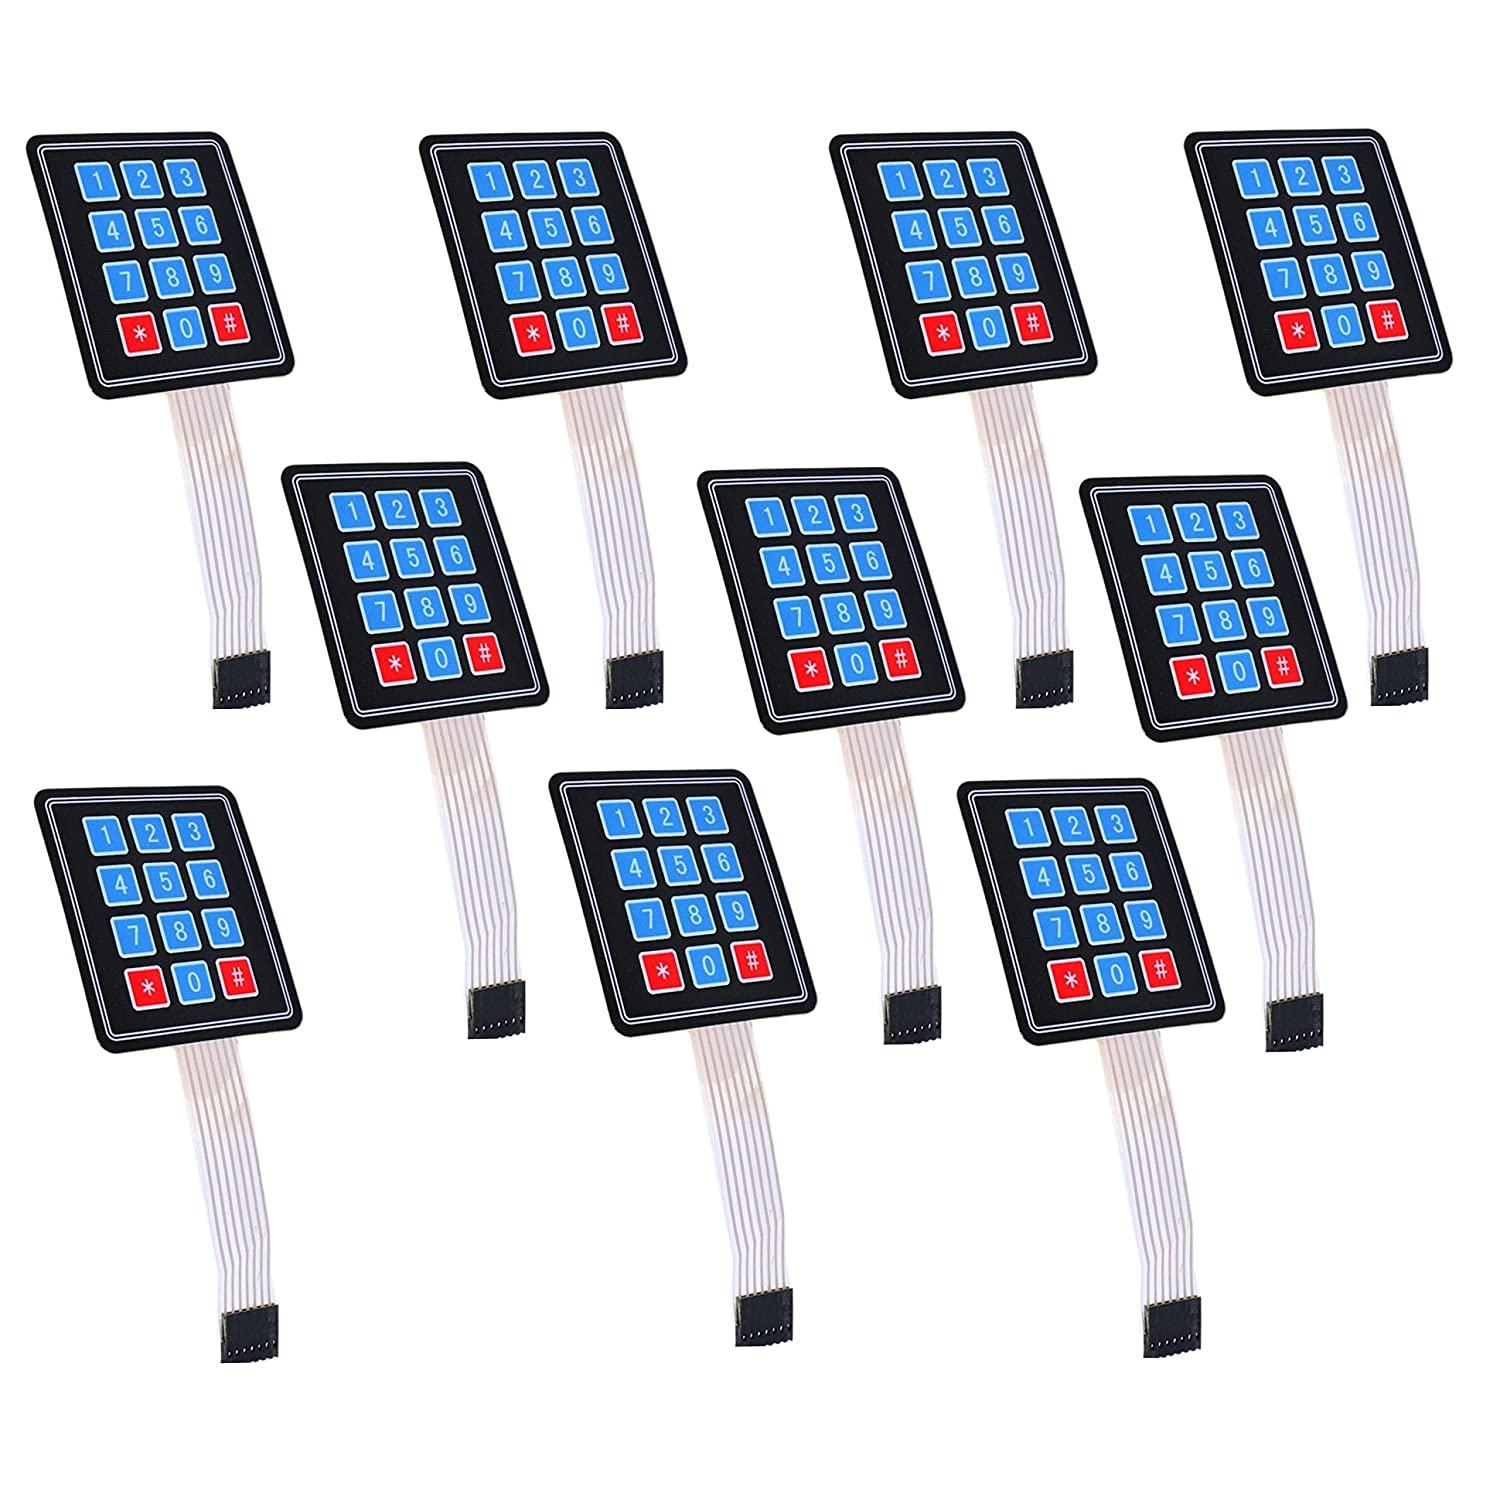 10pcs 3x4 Membrane Switch Matrix Keypad Thin and Flexible with Cable Connector and Adhesive Back for Easy Surface Attachment from Optimus Electric WiderCable S10-EAN0616639916546